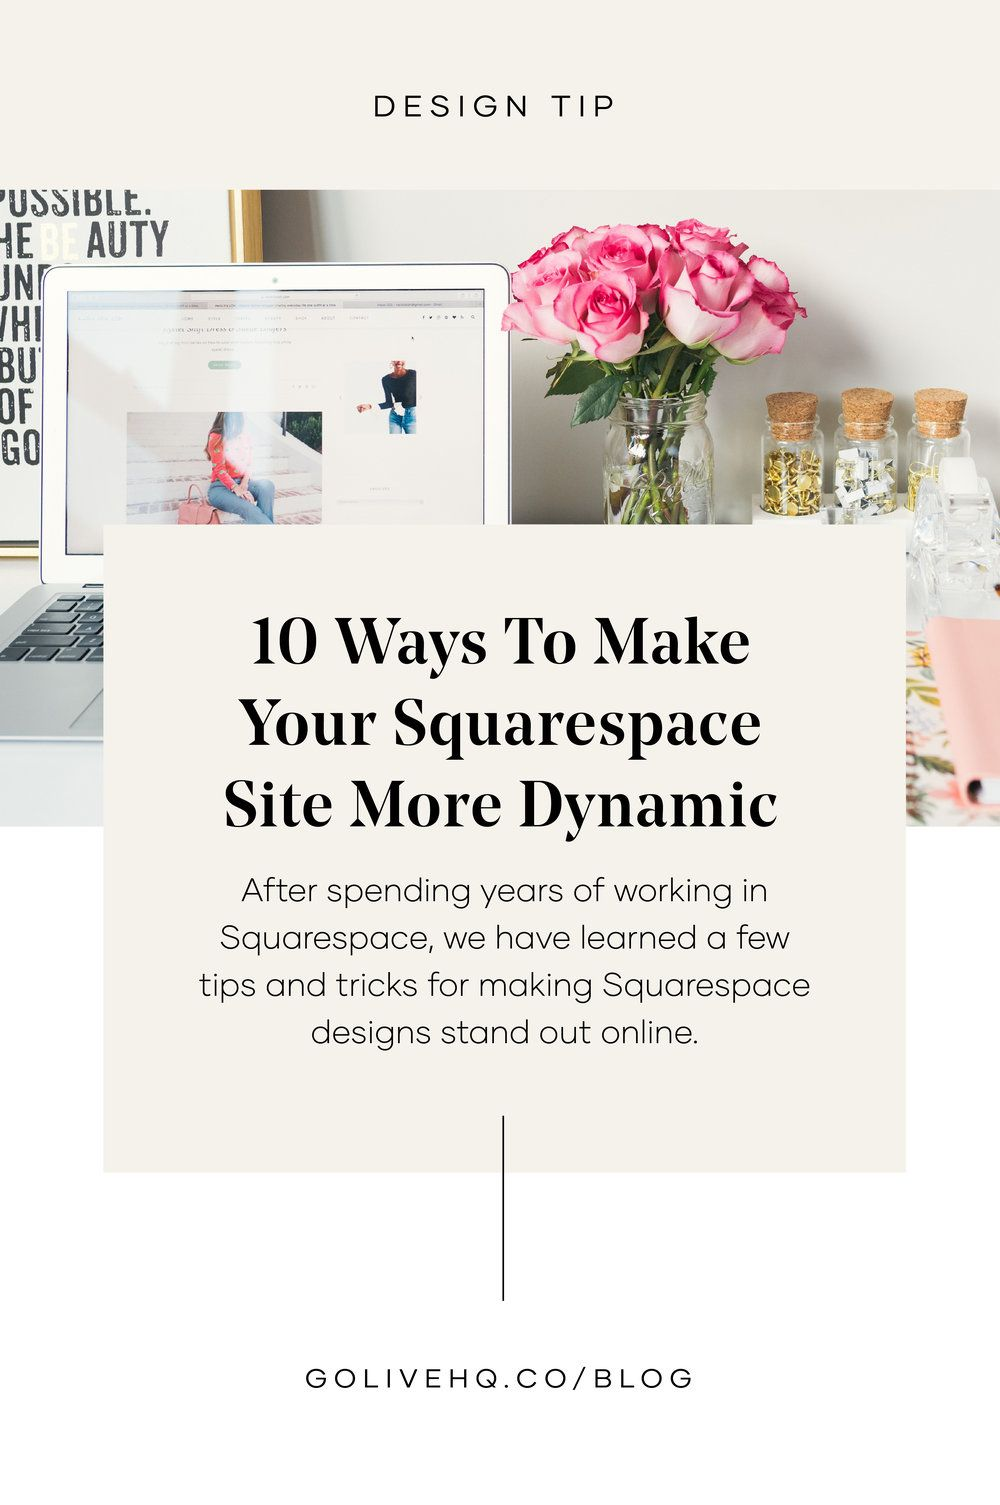 10 Ways To Make Your Squarespace Site More Dynamic